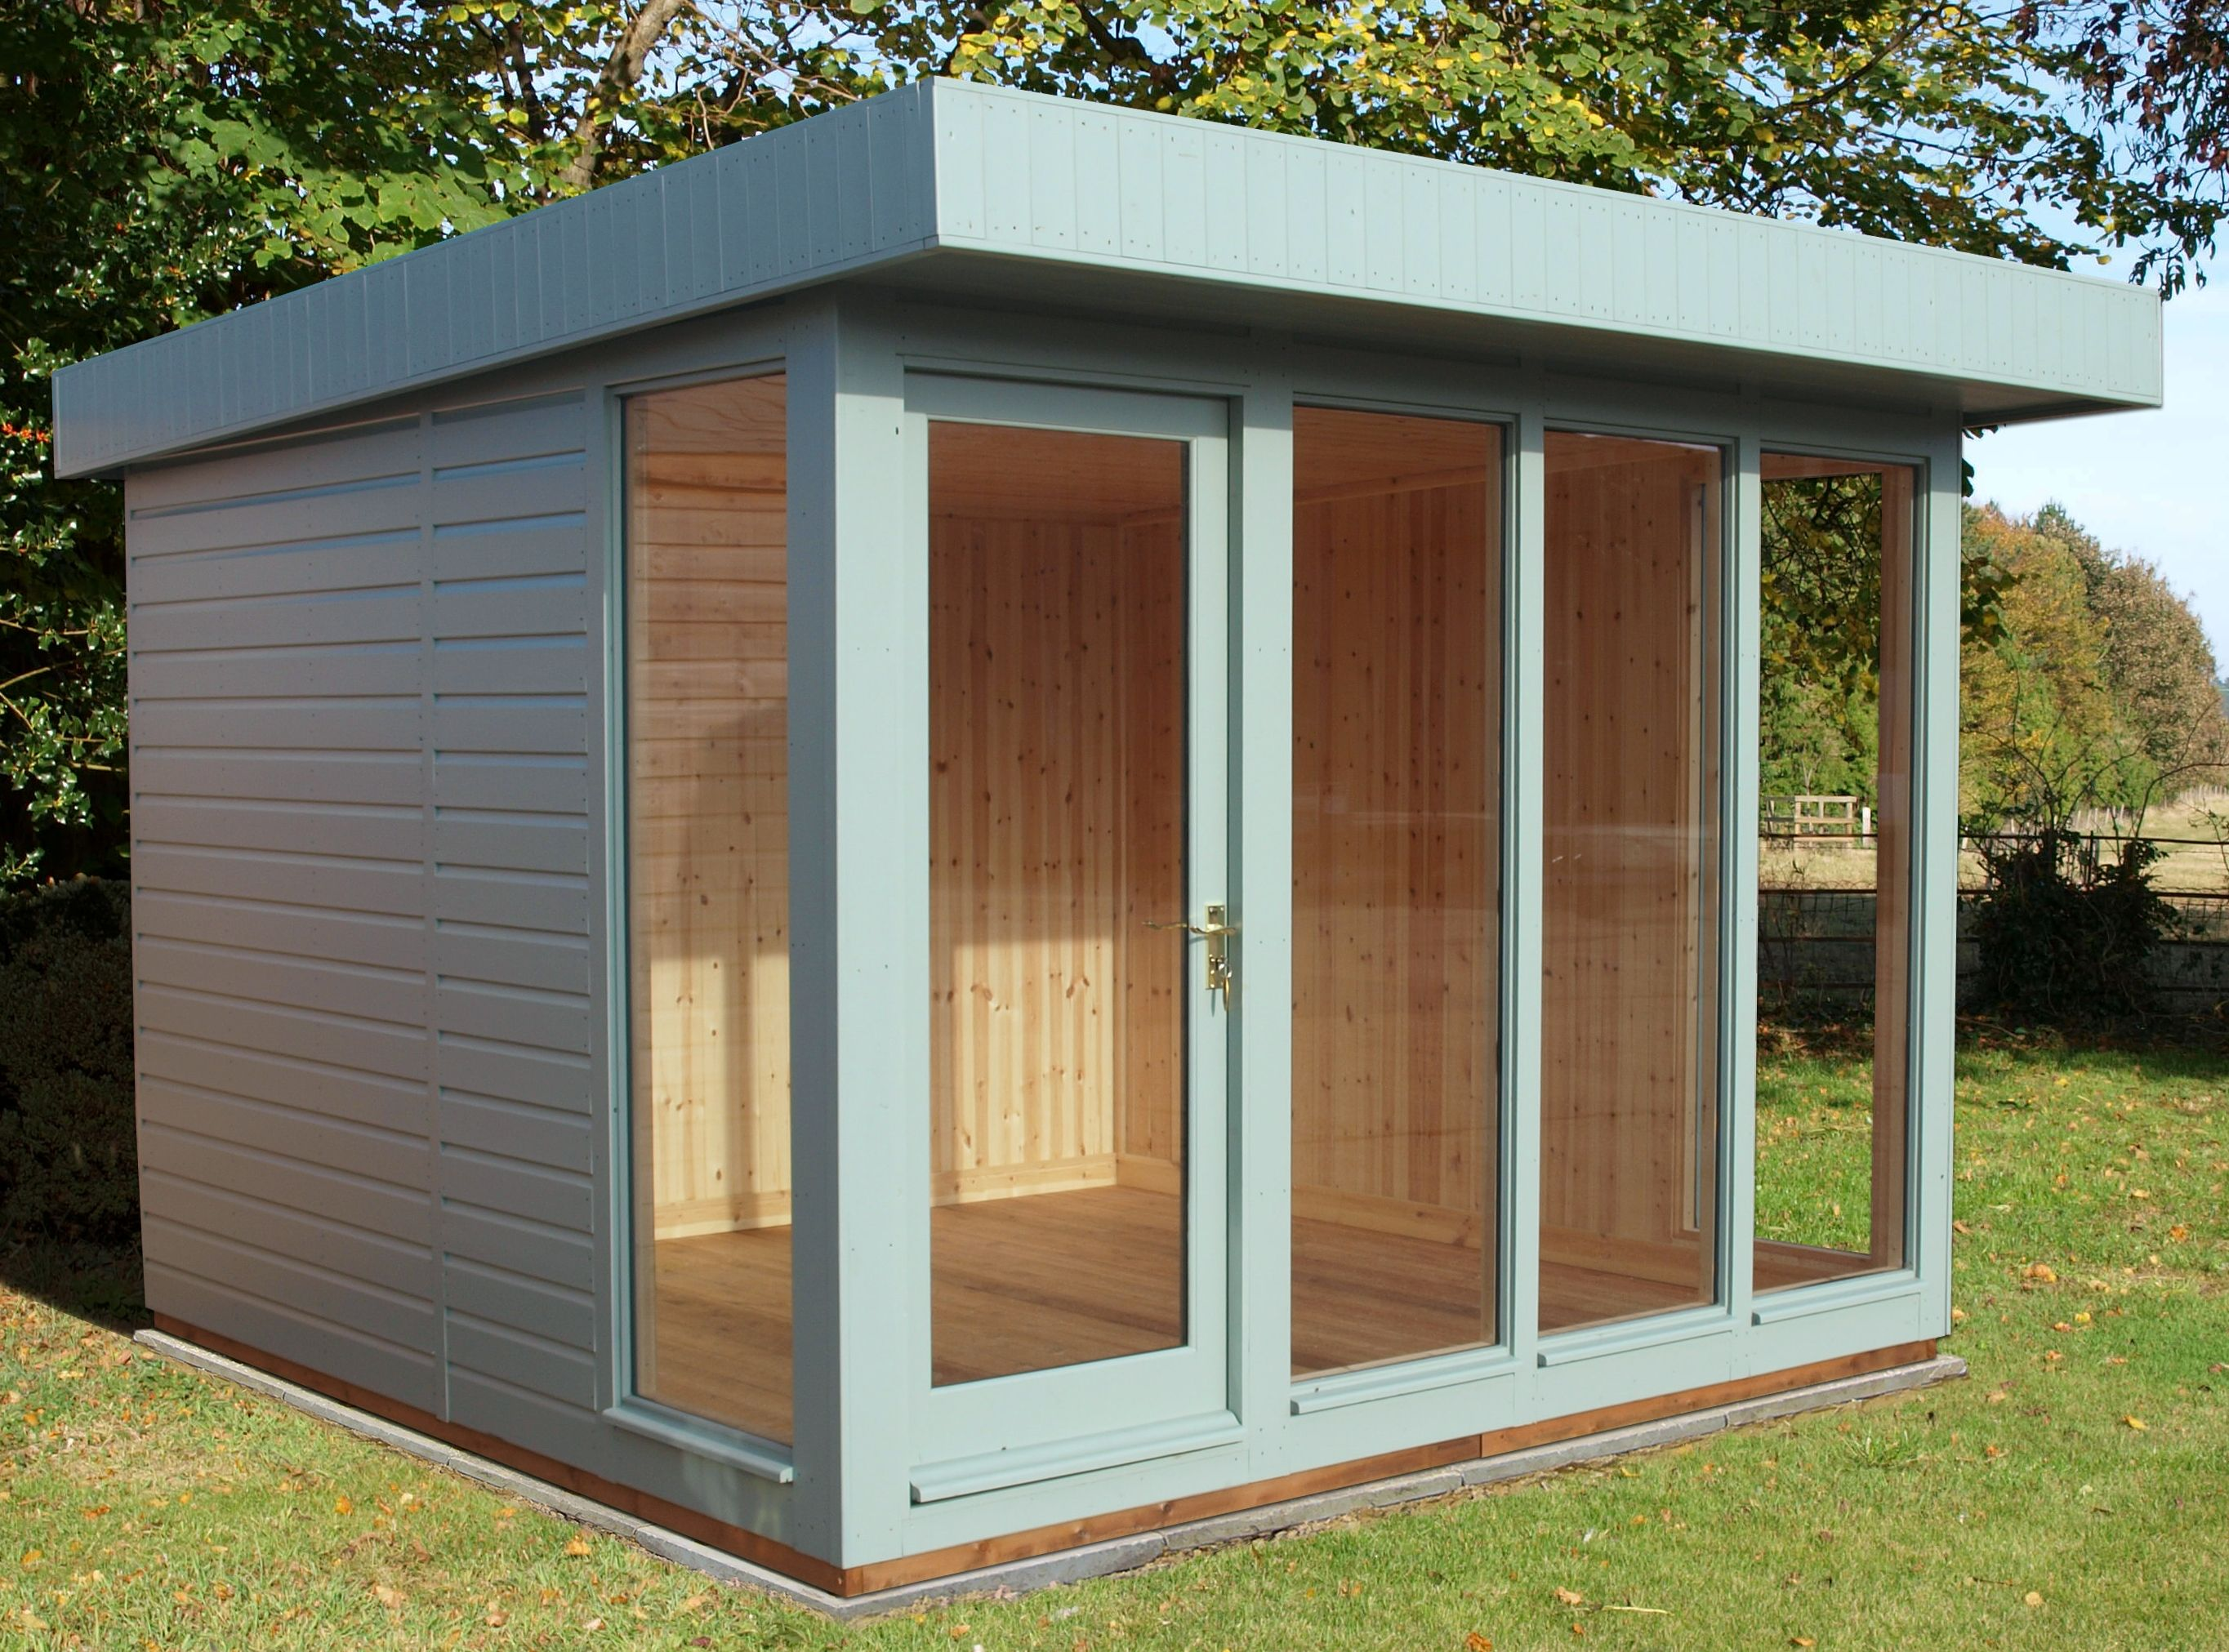 backyard shed designs contemporary garden sheds where to search for diy shed plans